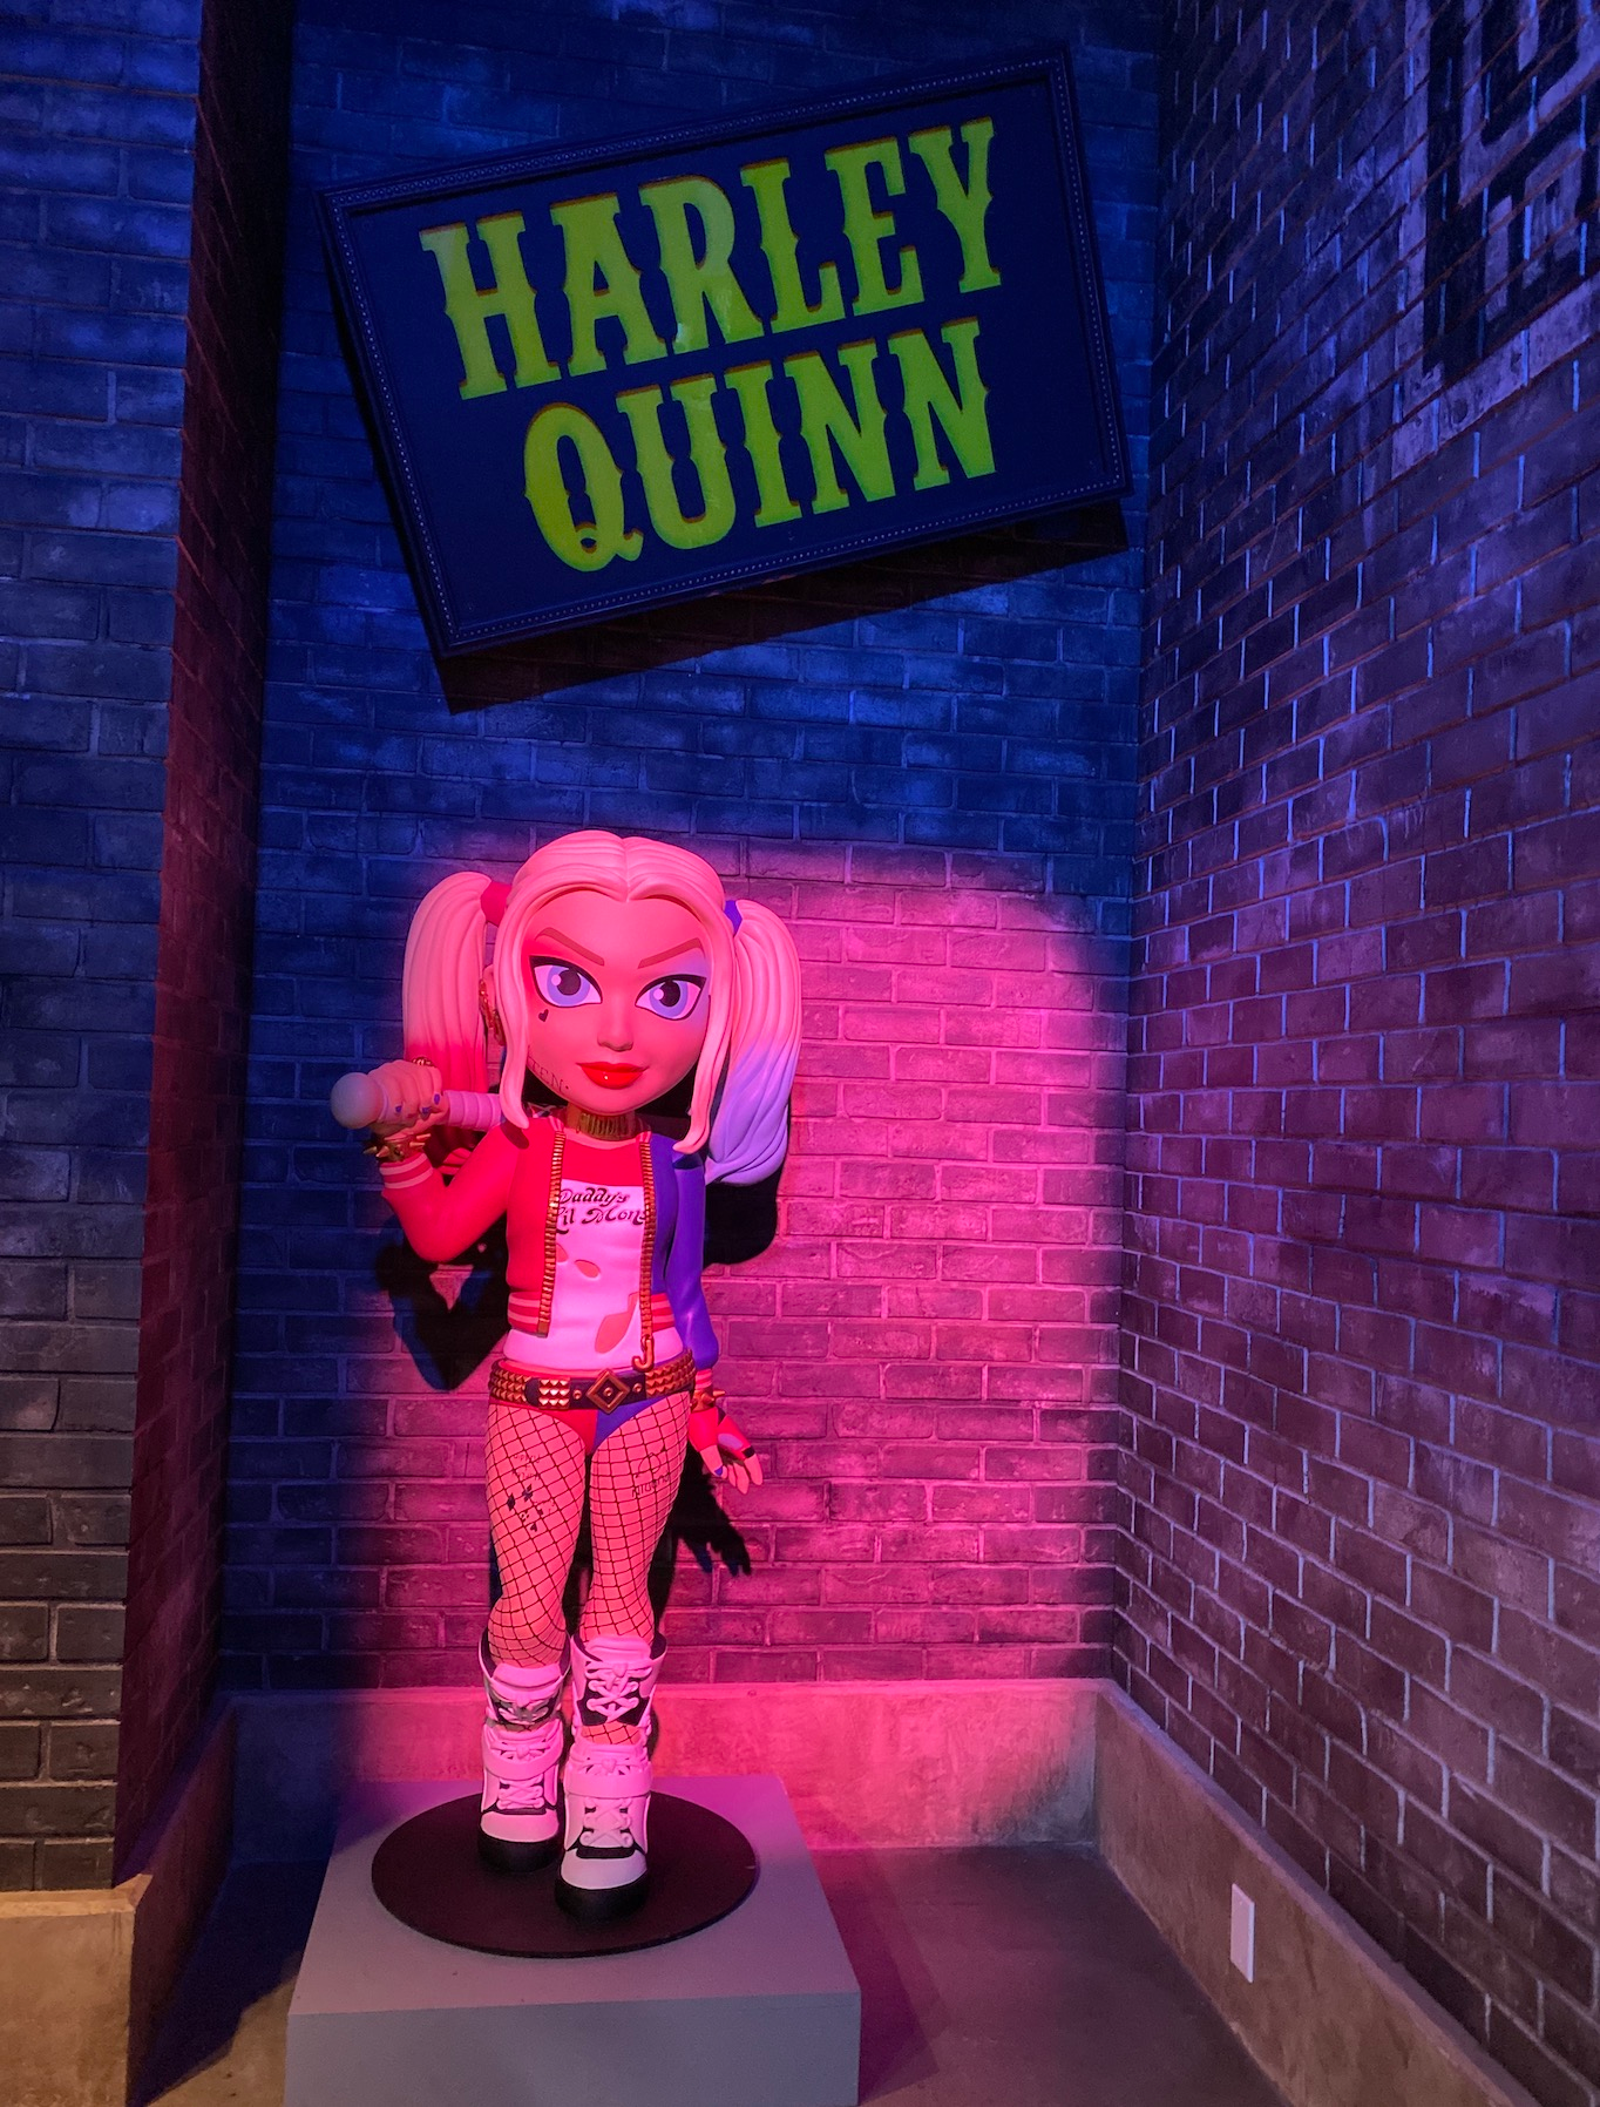 Yes, the Suicide Squad Harley makes an appearance.